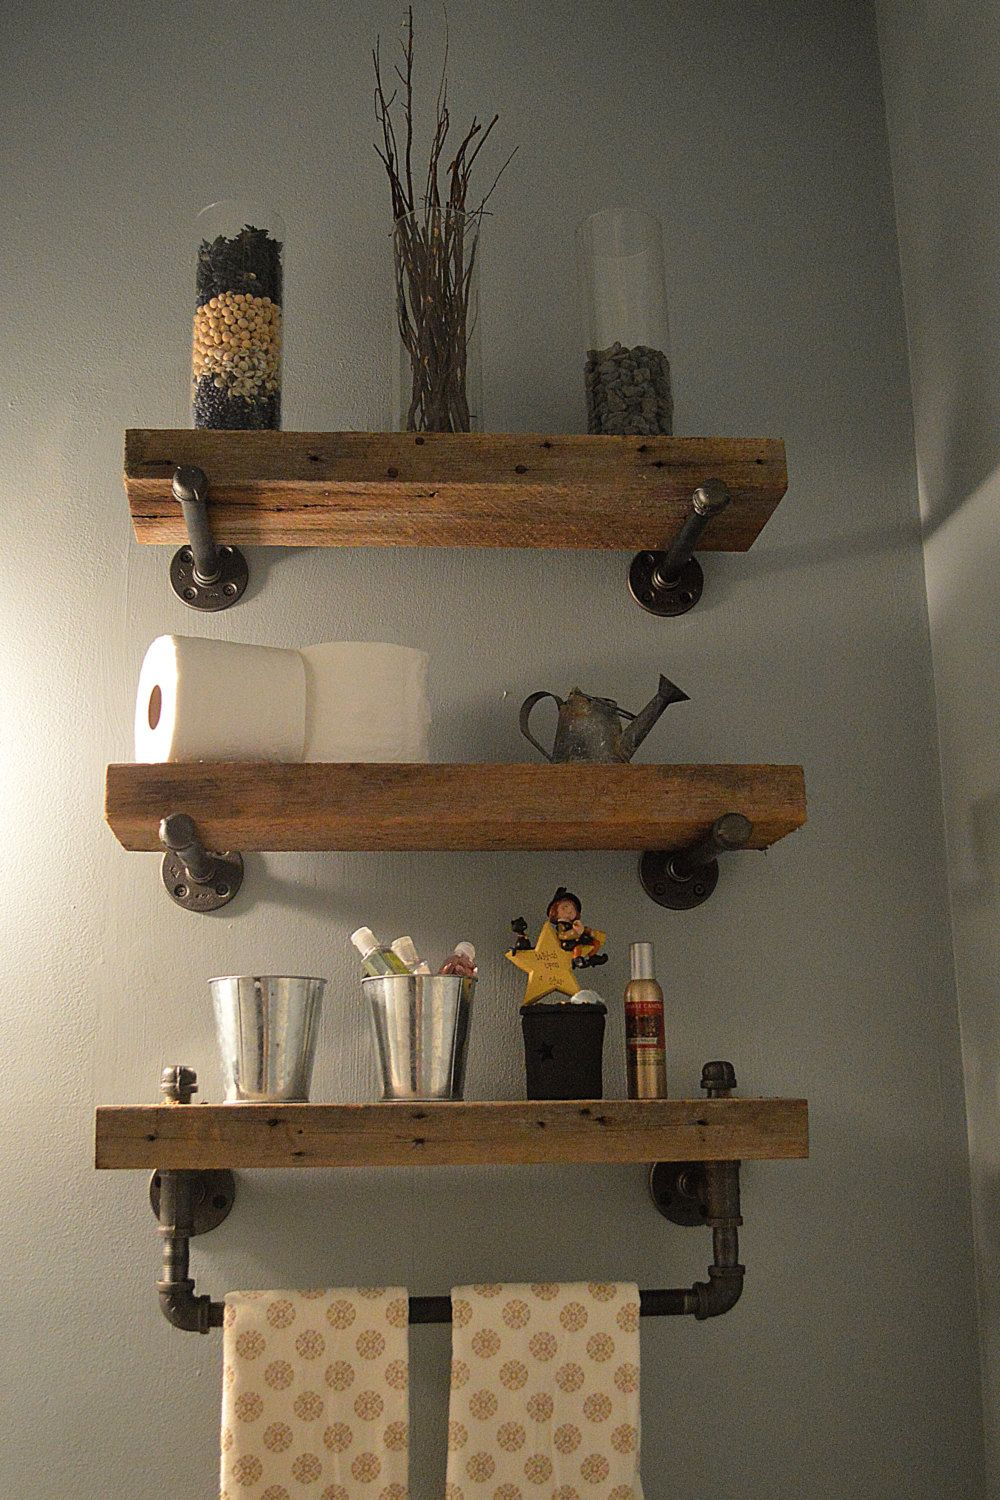 31 Gorgeous Rustic Bathroom Decor Ideas To Try At Home  Plank Classy Rustic Bathroom Hardware Decorating Inspiration